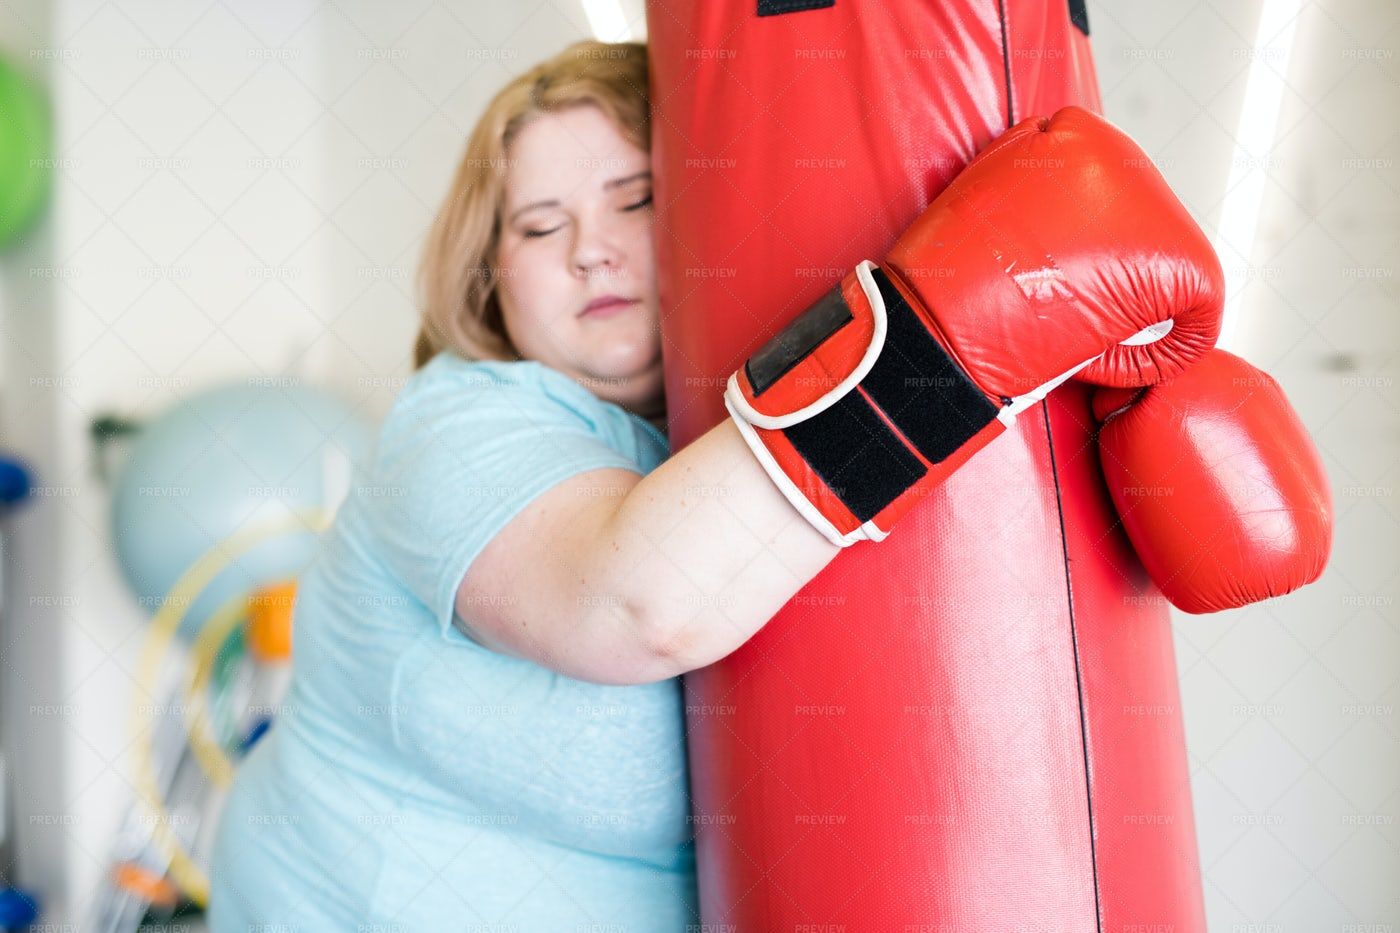 Tired Obese Woman Training In Gym: Stock Photos